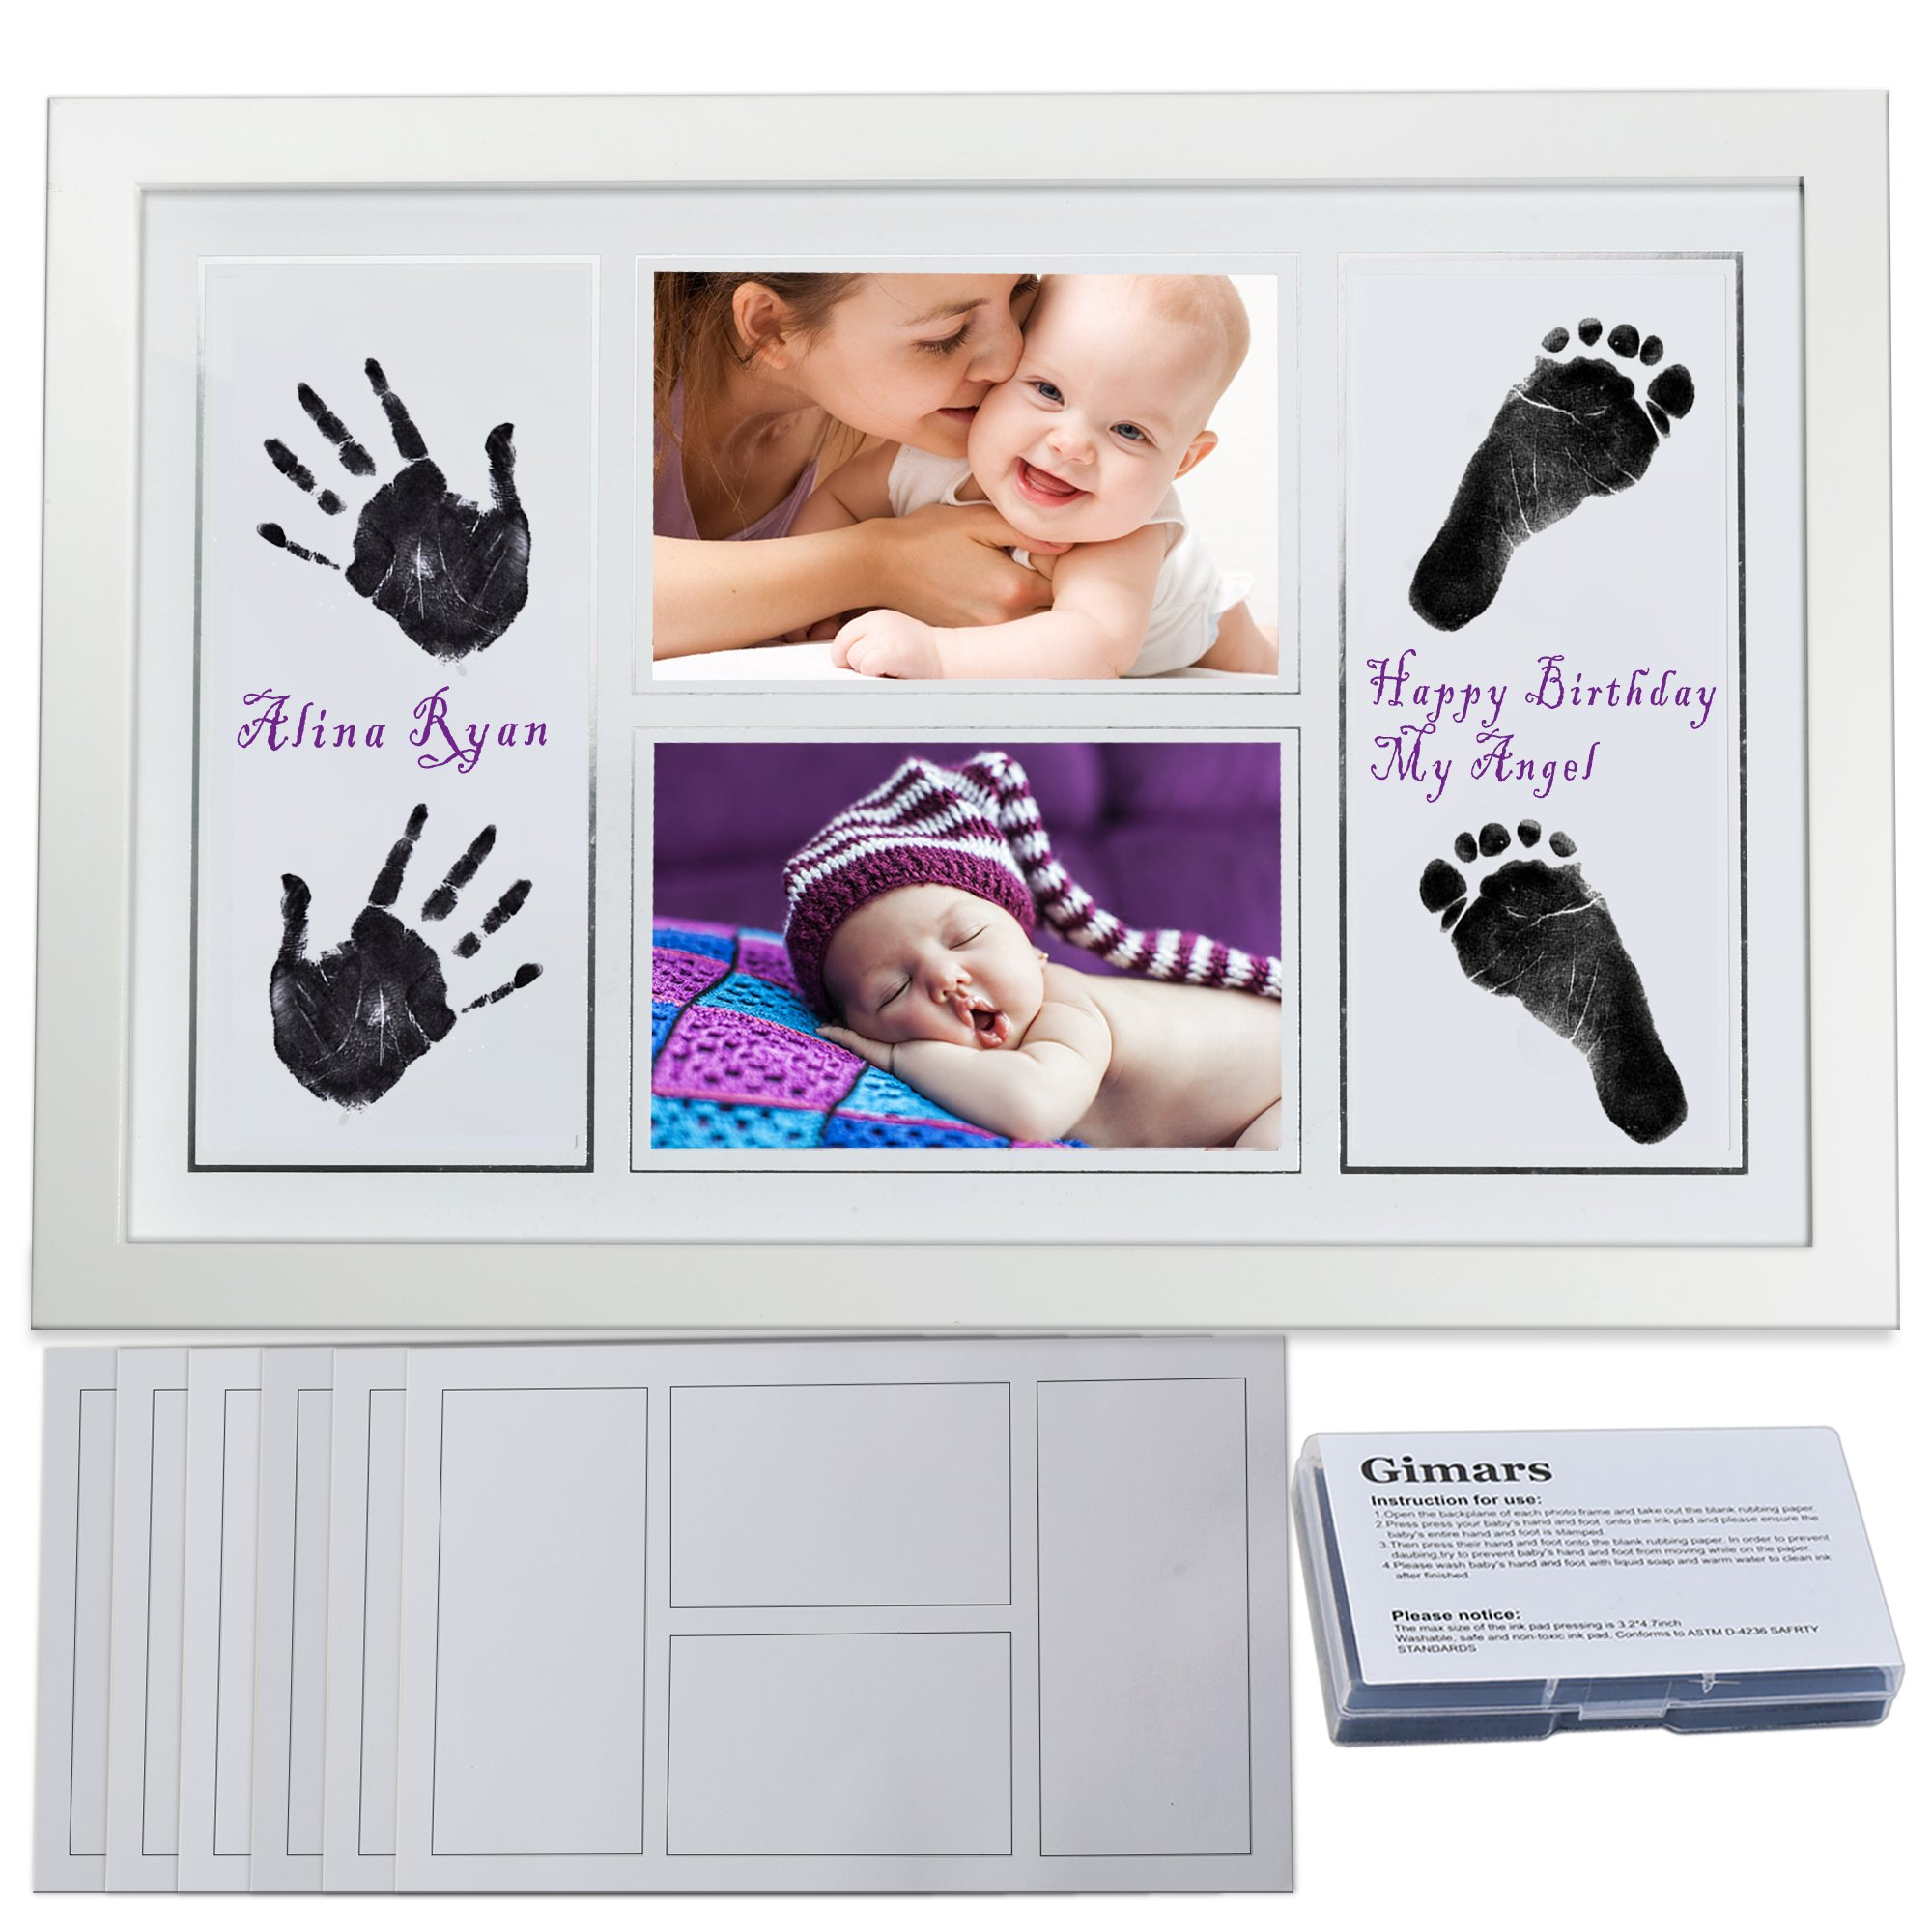 A Perfect Baby Shower Gift Gimars Baby Safe Large Reusable Ink Pad /& Newborn Baby Handprint and Footprint Photo Frame Kit with 6 Thicker Paper Sheets to Save Baby Prints